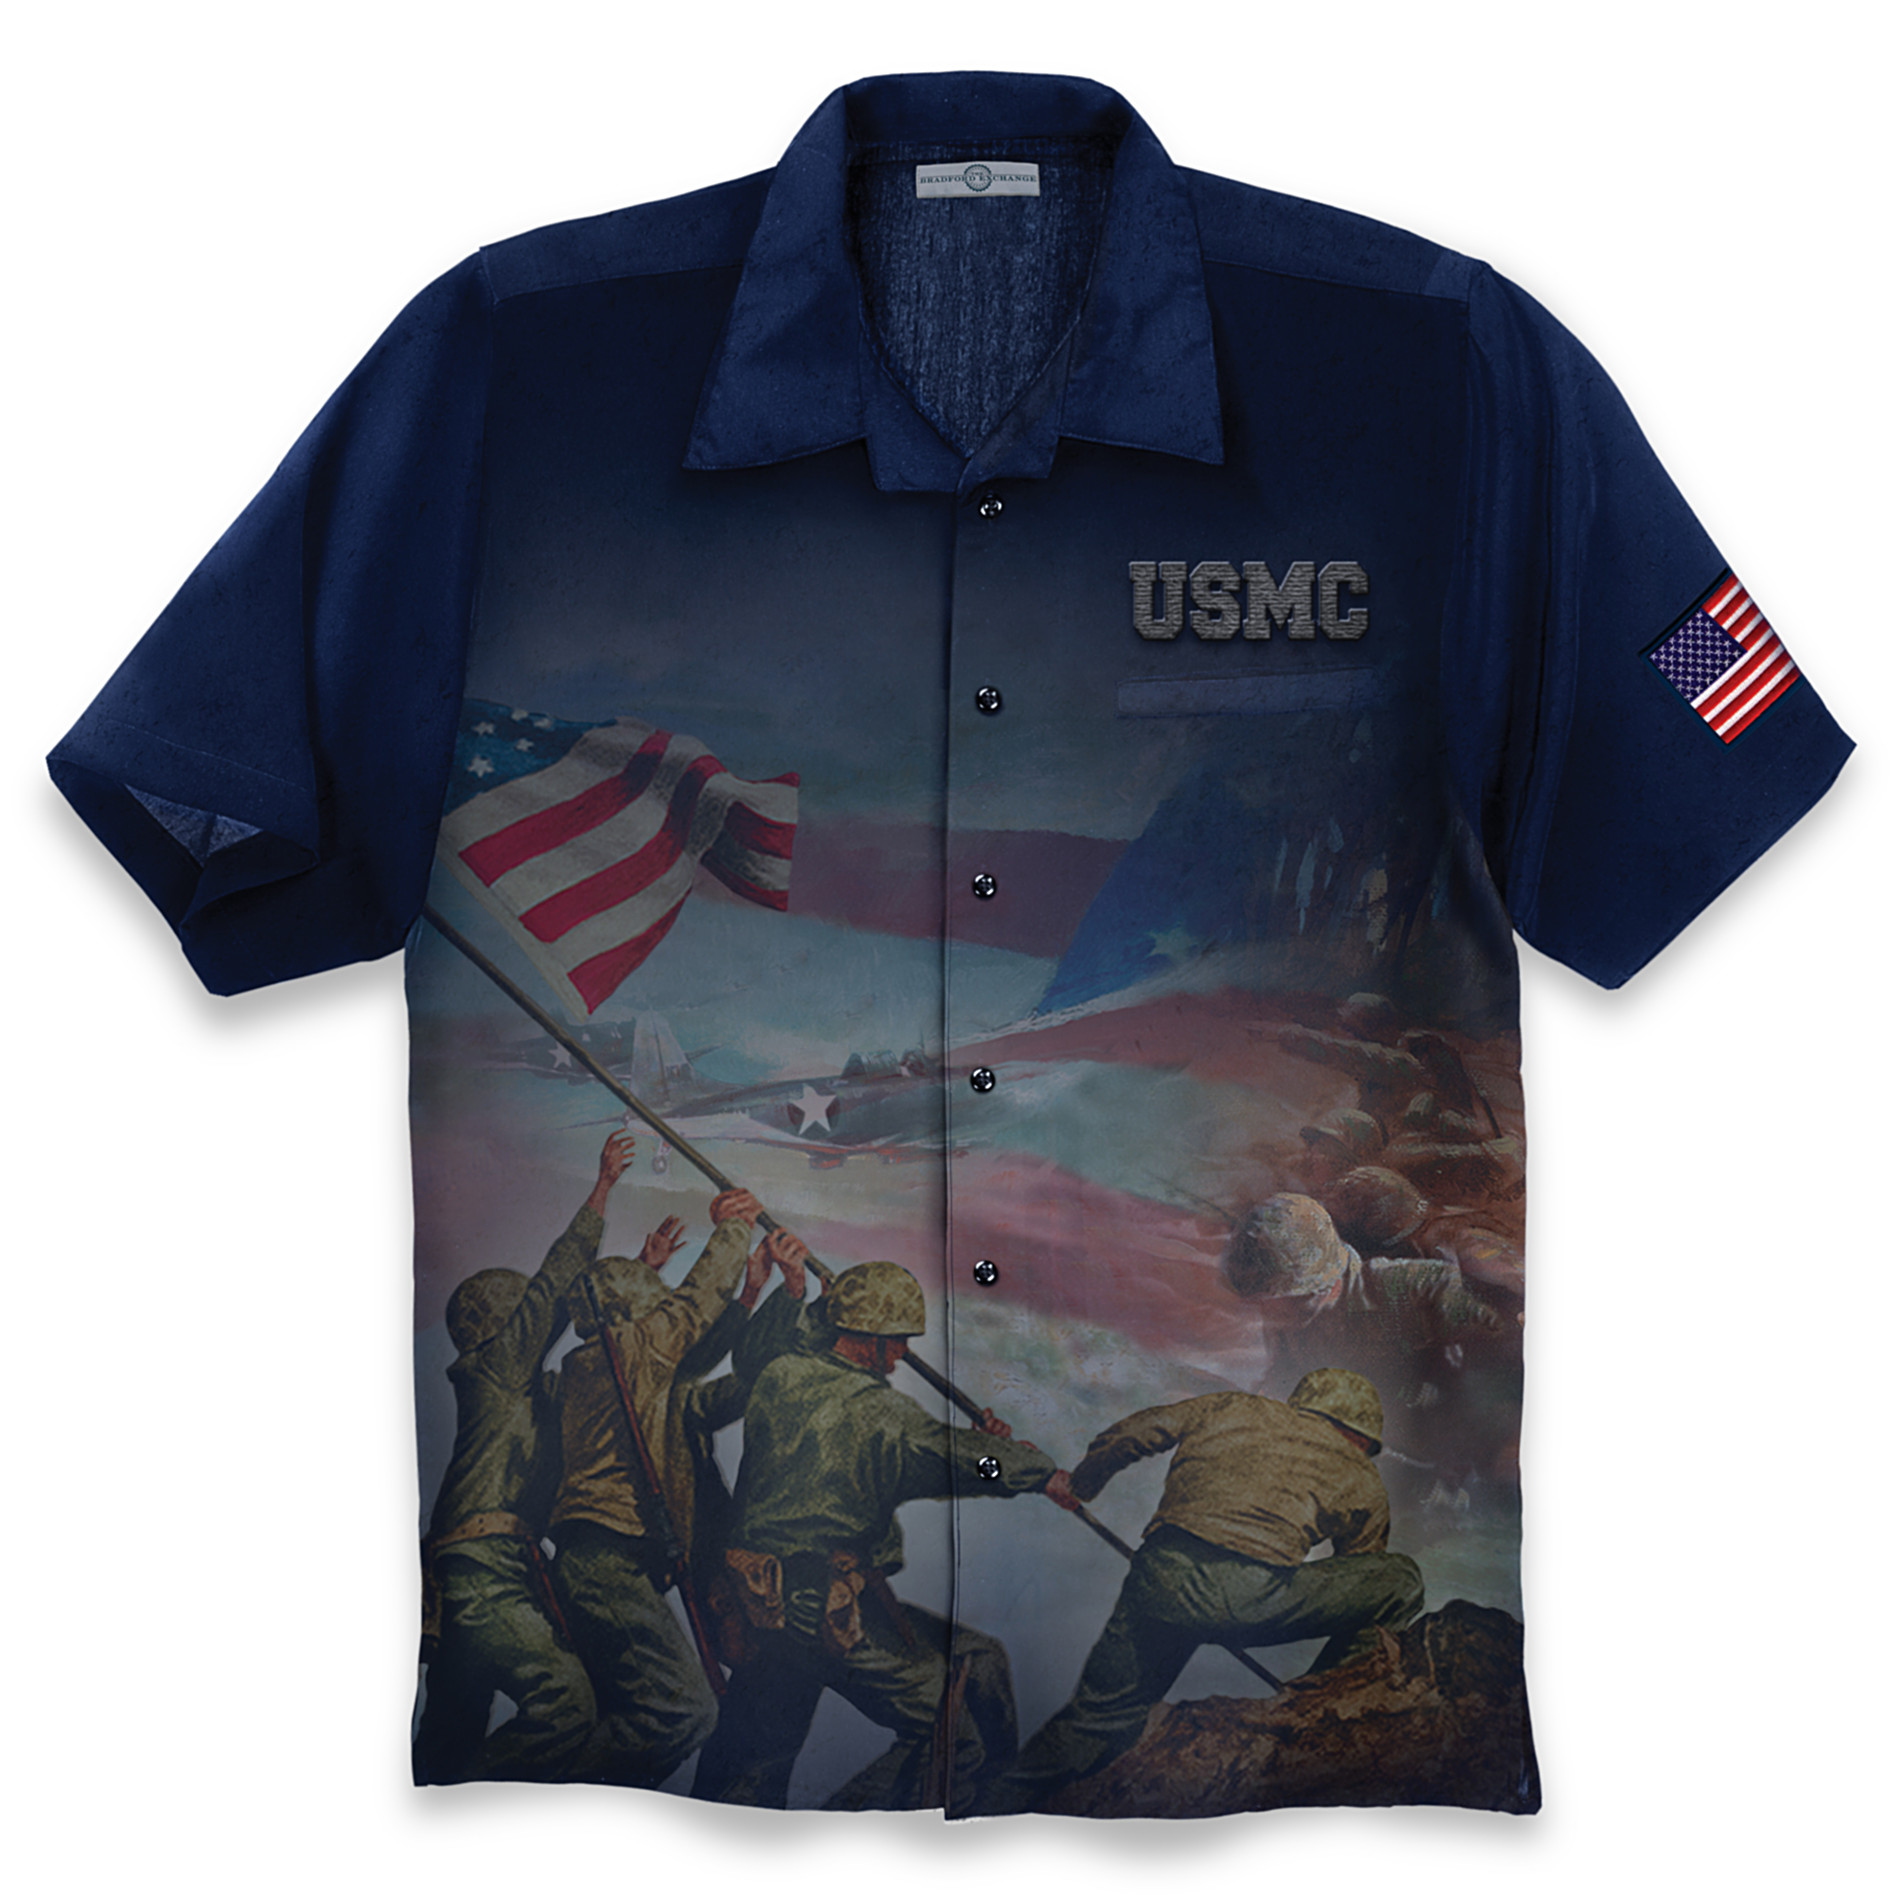 The Bradford Exchange Men's Shirt: USMC Marine Pride at Sears.com